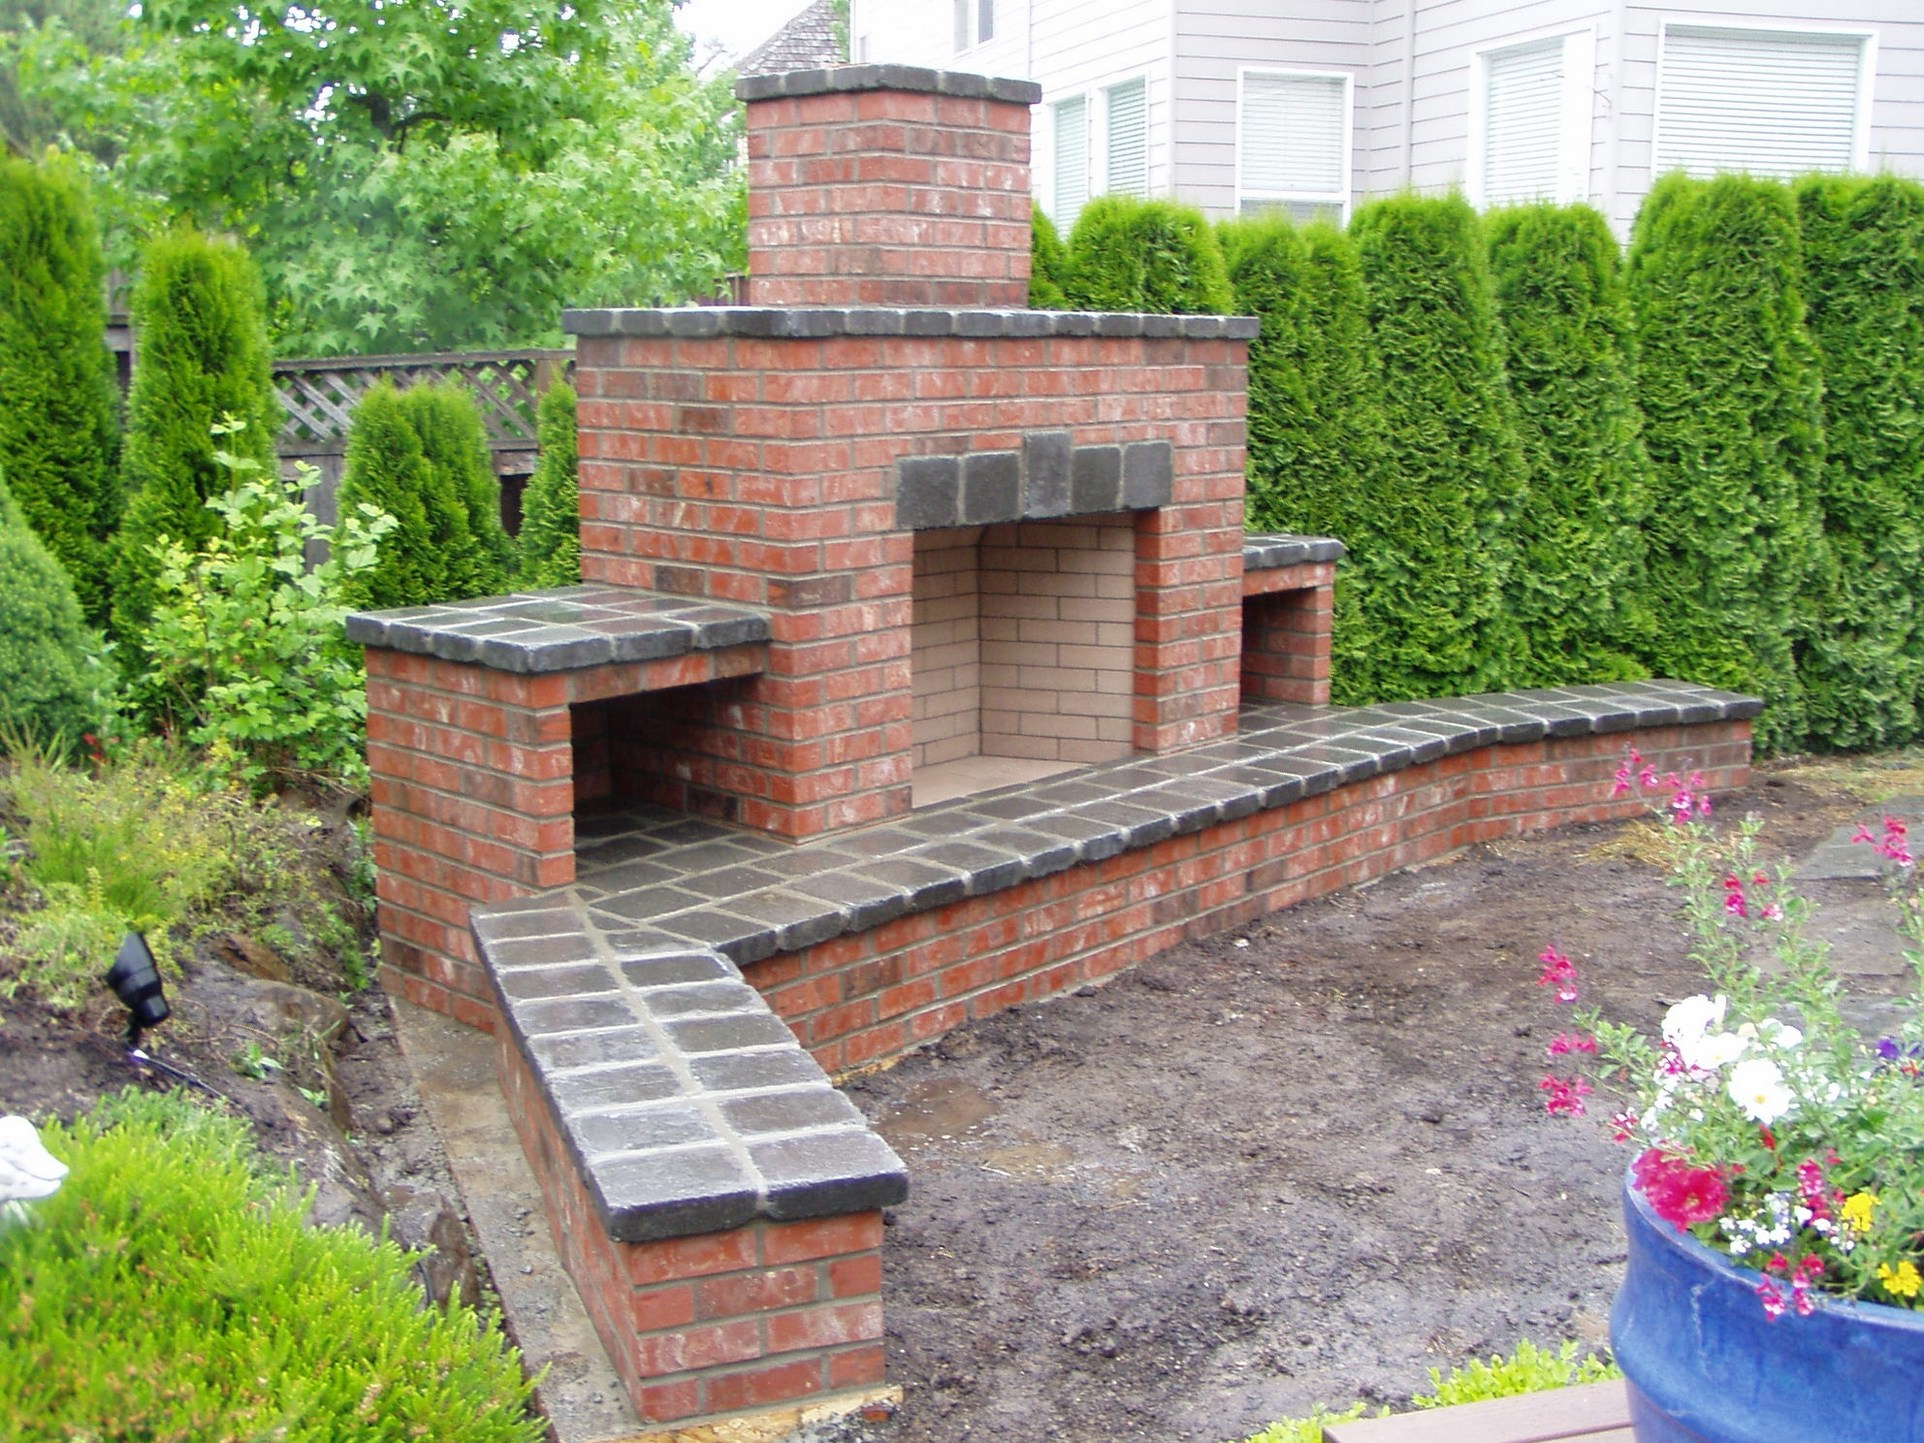 How to build an outdoor fireplace - Step-by-step guide on Simple Outdoor Brick Fireplace id=41106